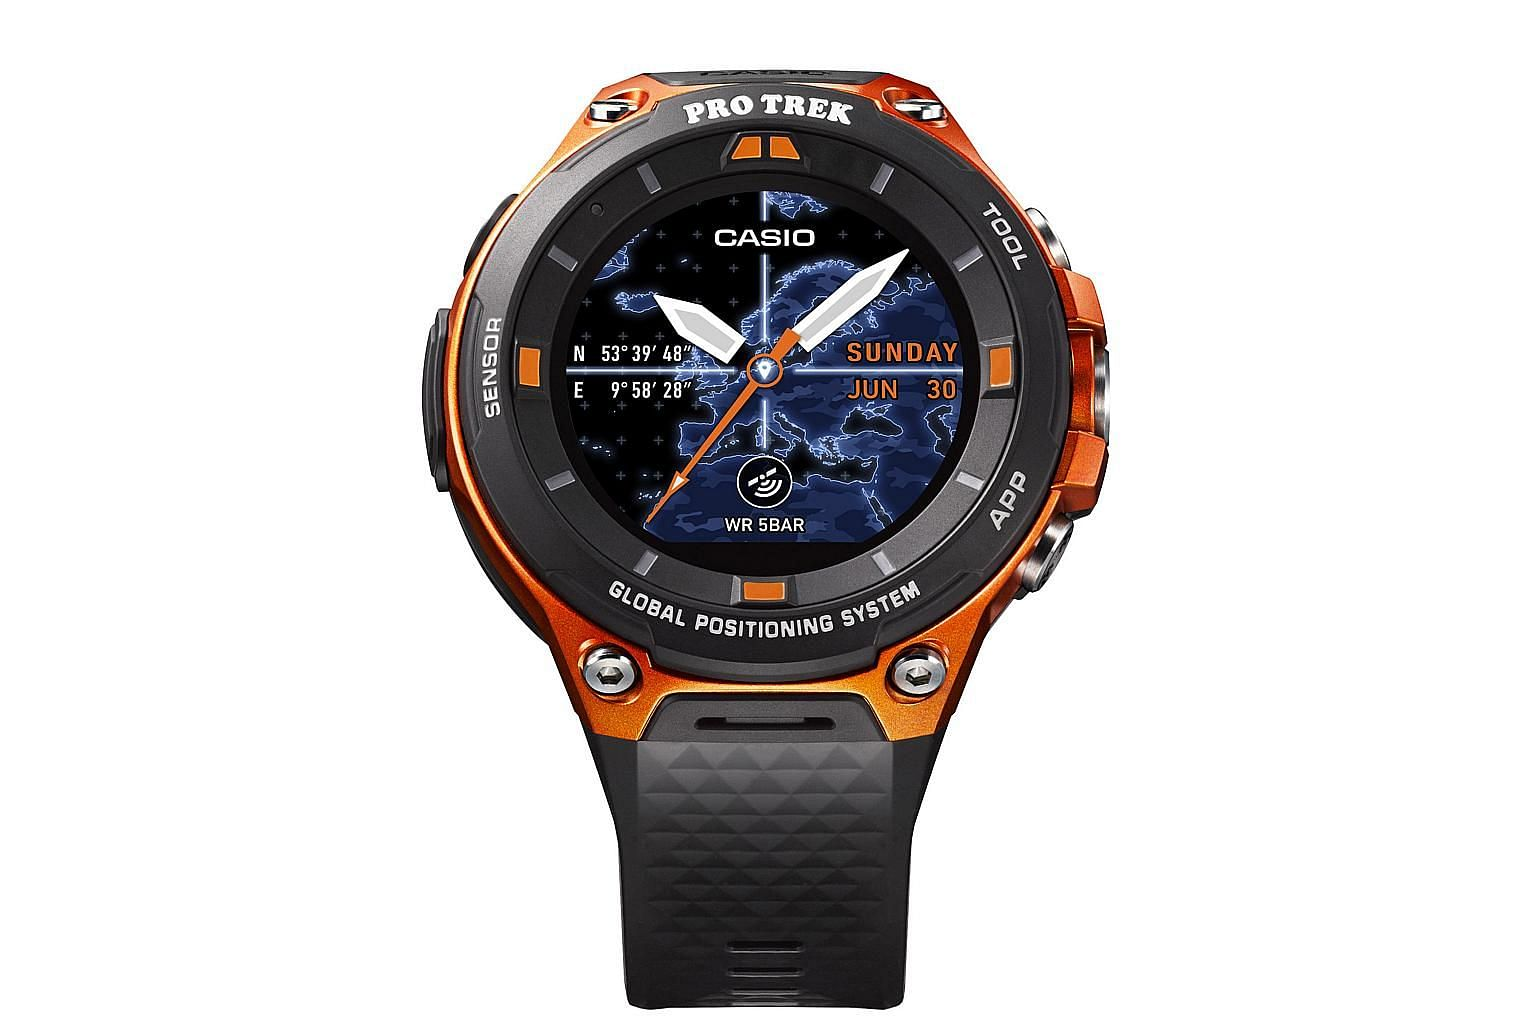 The Casio WSD-F20 has built-in GPS and supports offline maps.